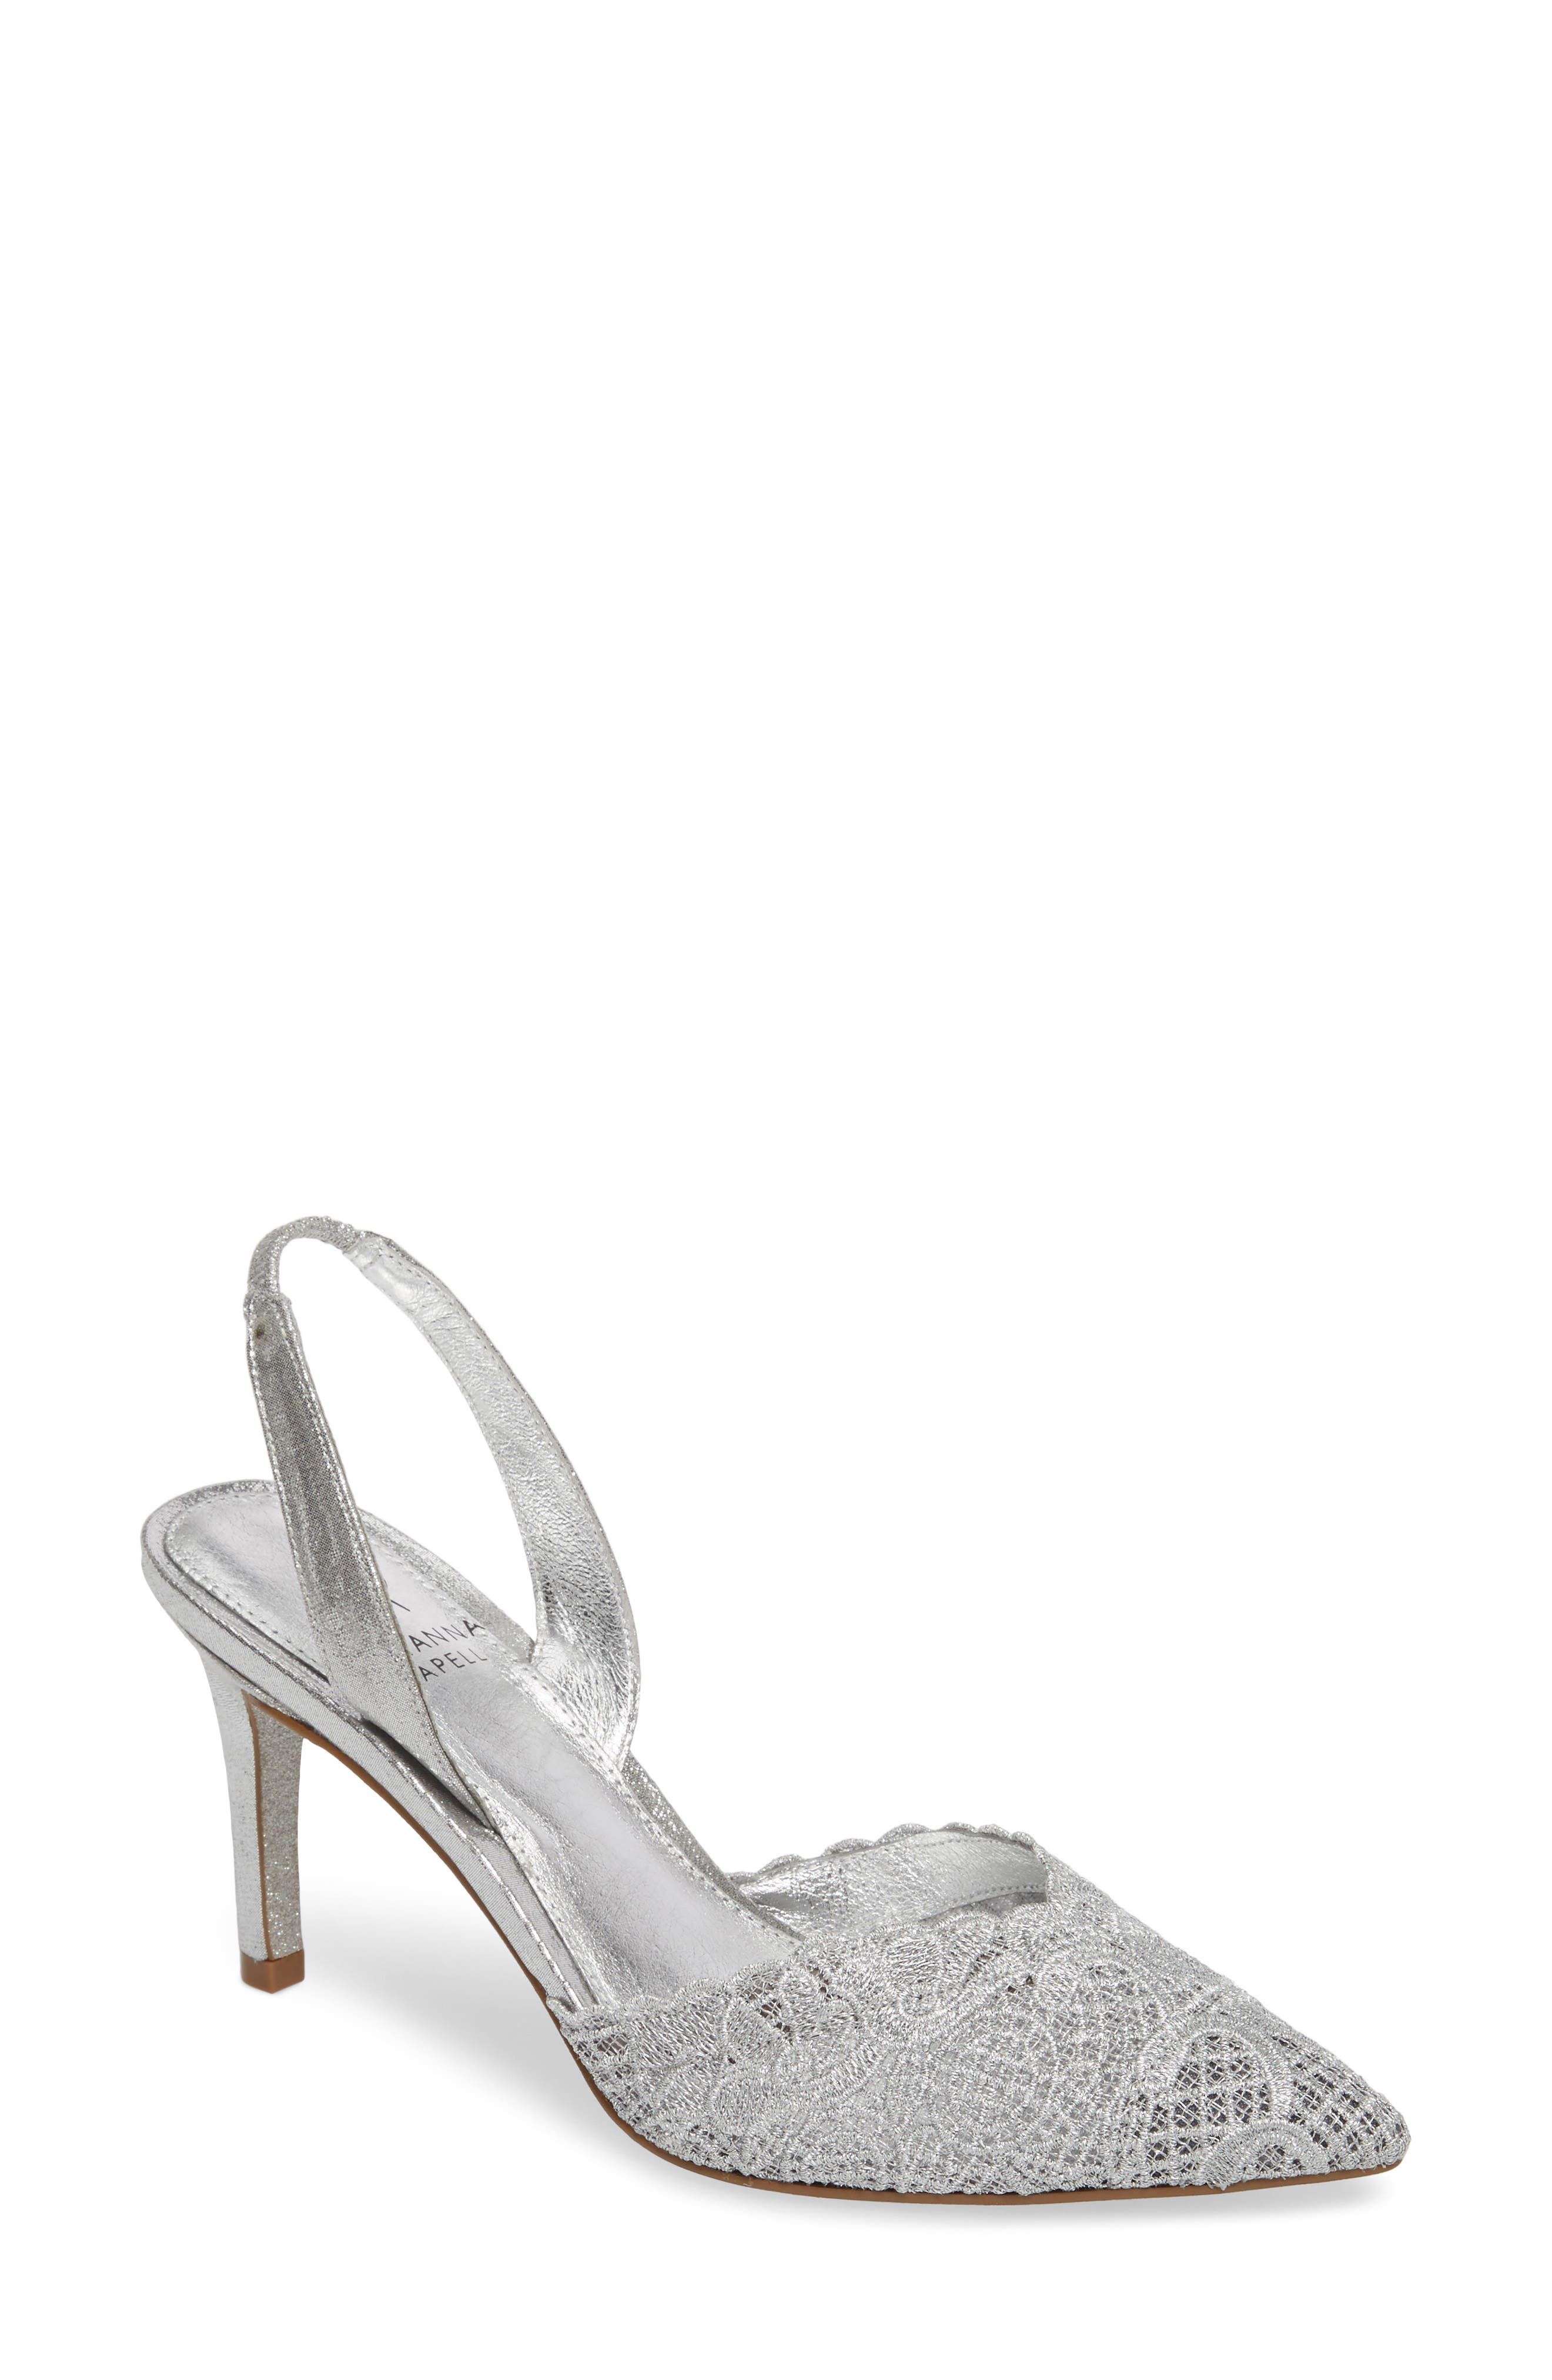 d53ce31a4ad Hallie Slingback Pump in Silver Attalie Lace Fabric